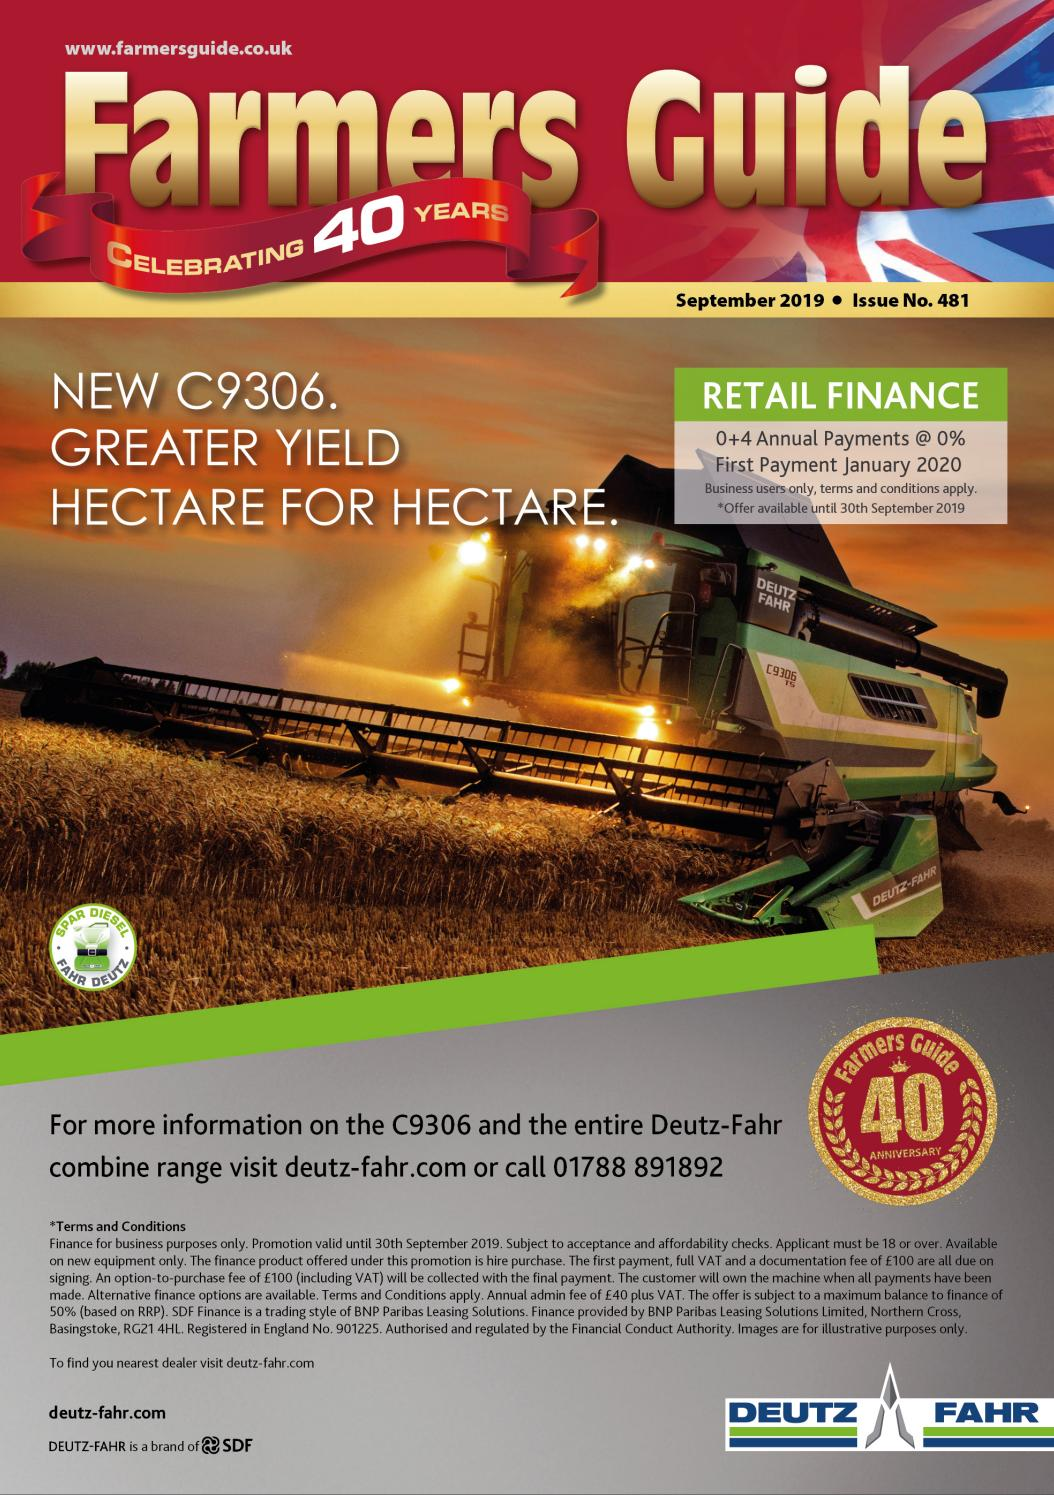 Farmers Guide September 2019 by Farmers Guide - issuu